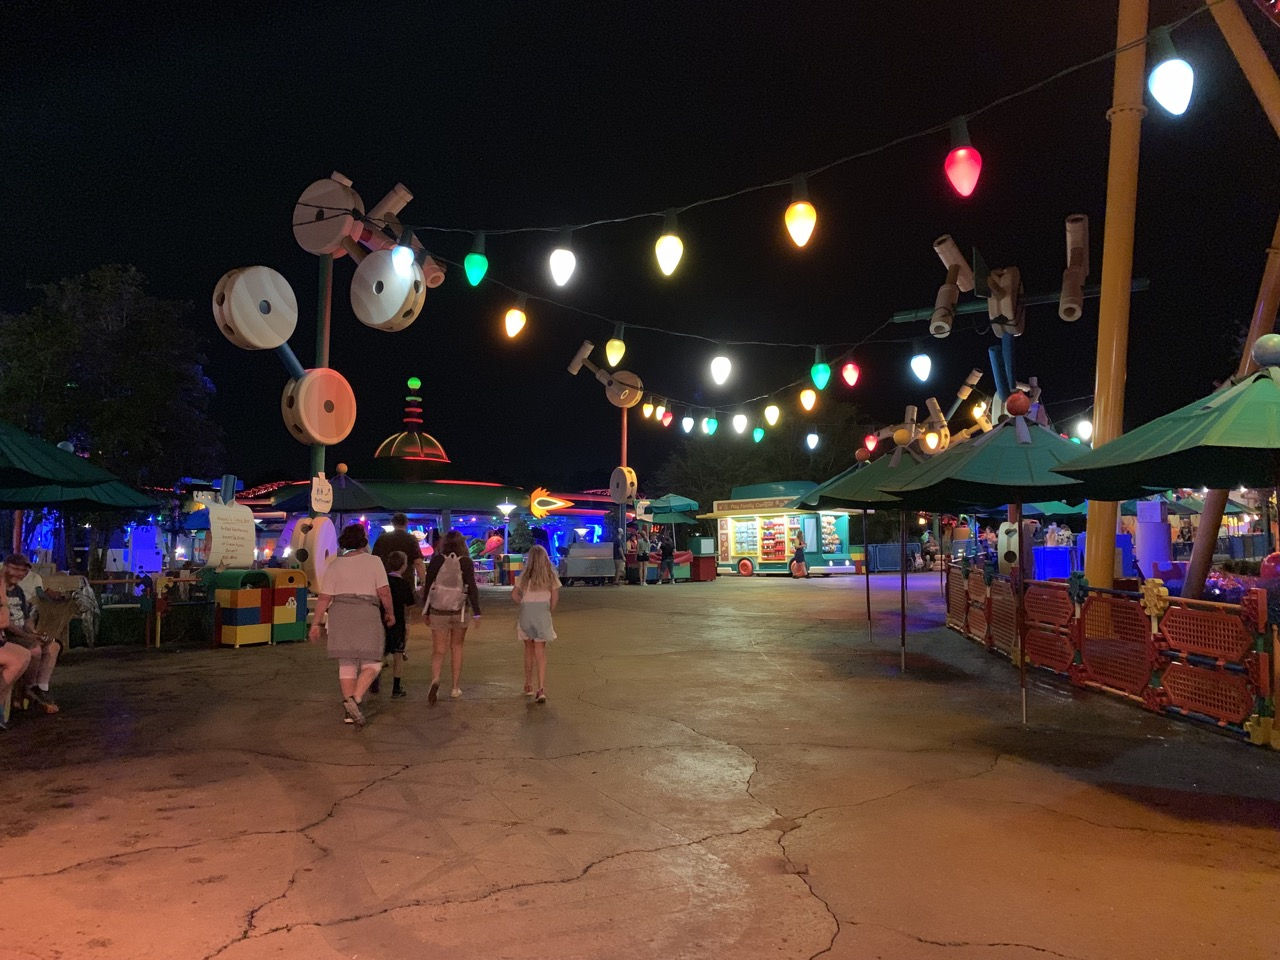 disney world hollywood studios after hours review 34 toy story land.jpeg